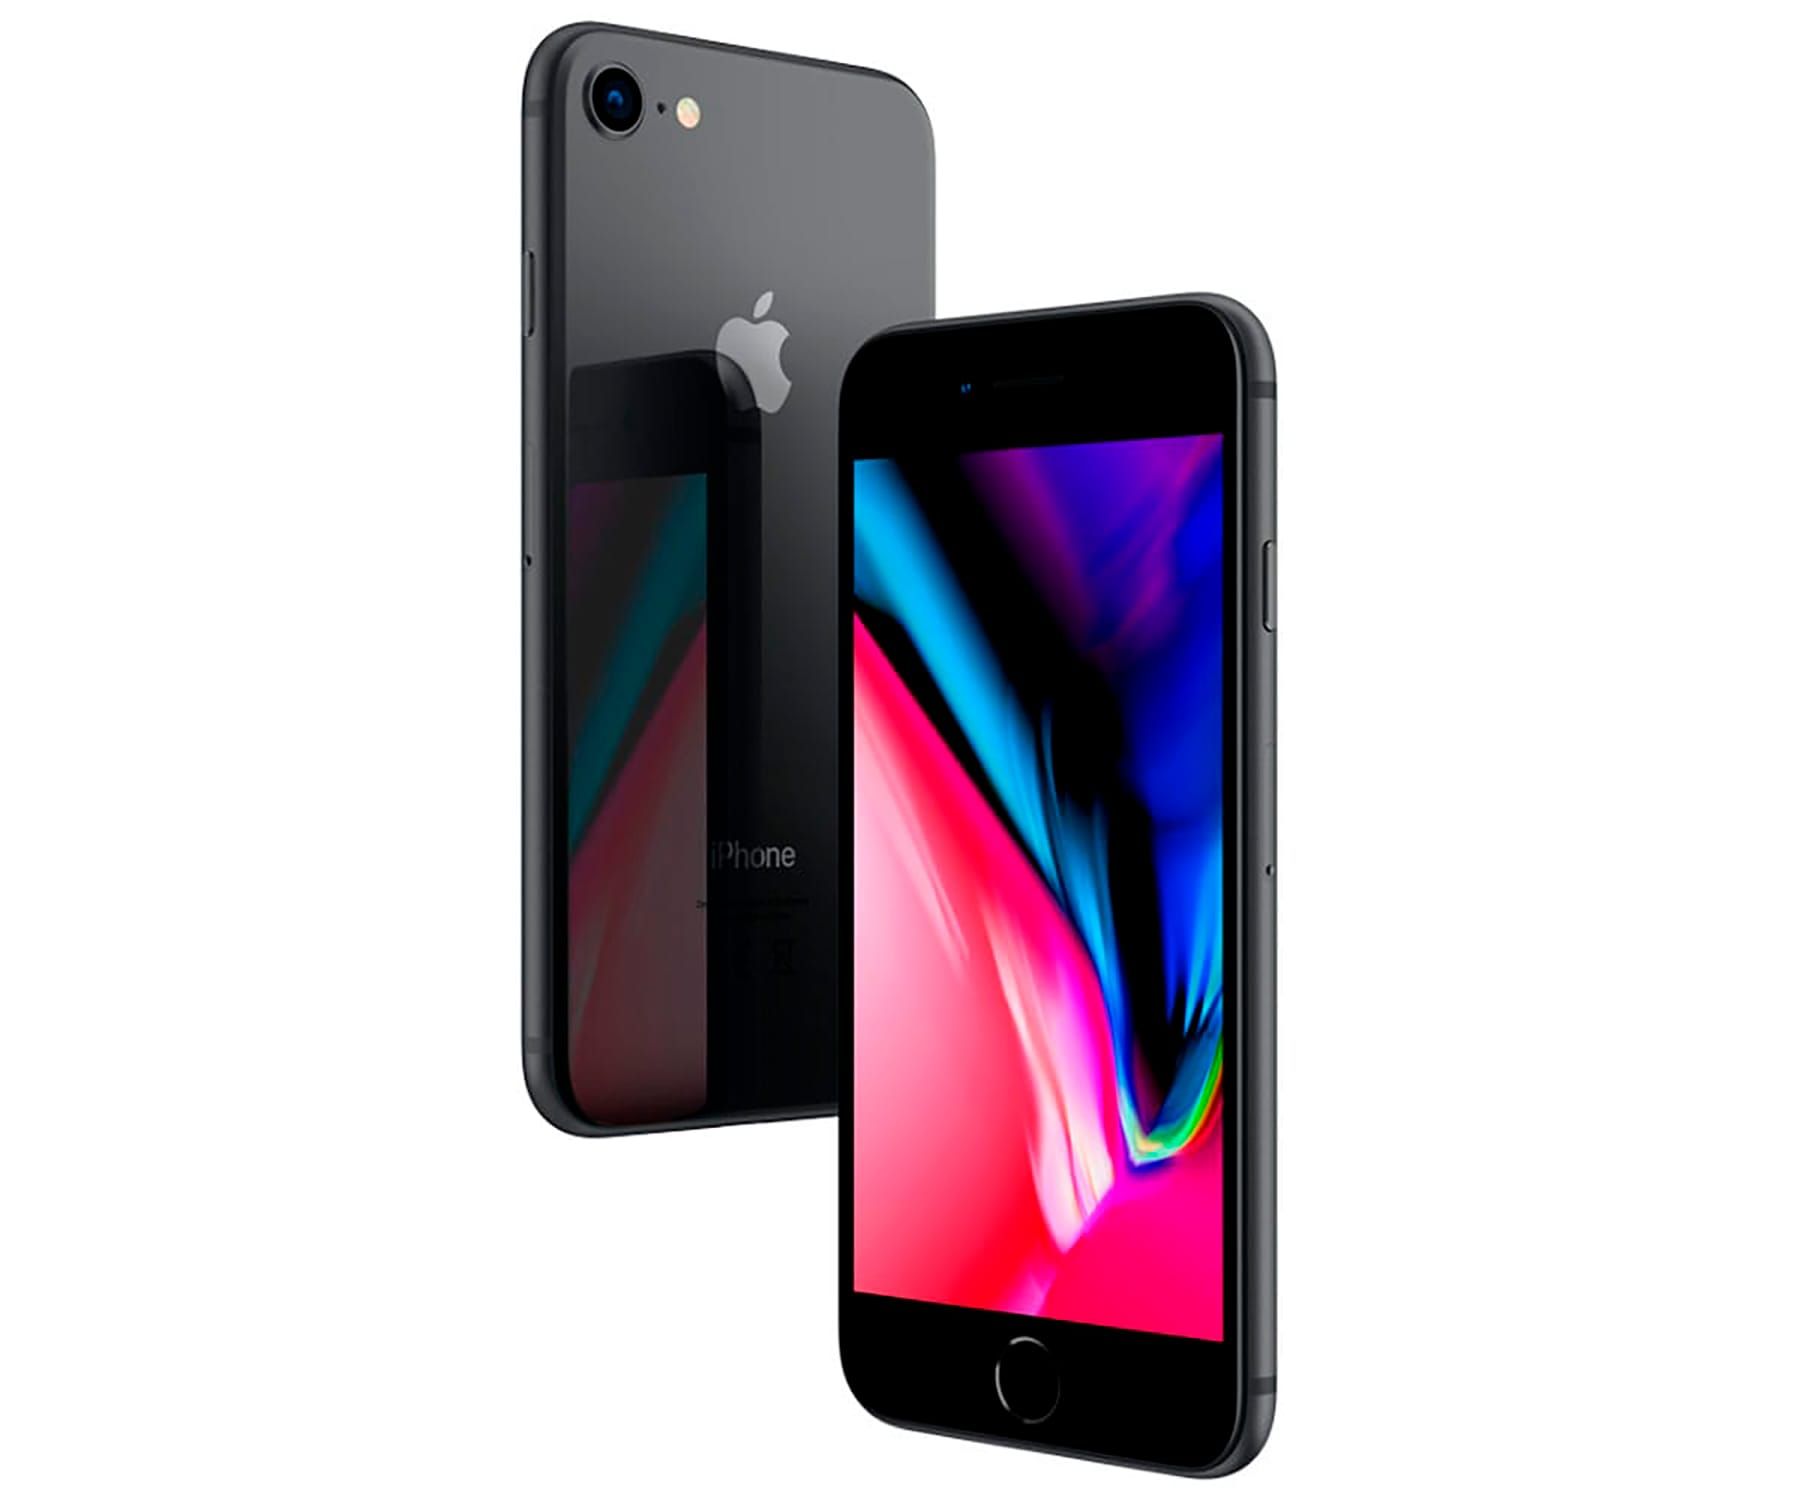 APPLE IPHONE 8 64GB GRIS ESPACIAL REACONDICIONADO CPO MÓVIL 4G 4.7'' RETINA HD/6CORE/64GB/2GB RAM/12MP/7MP